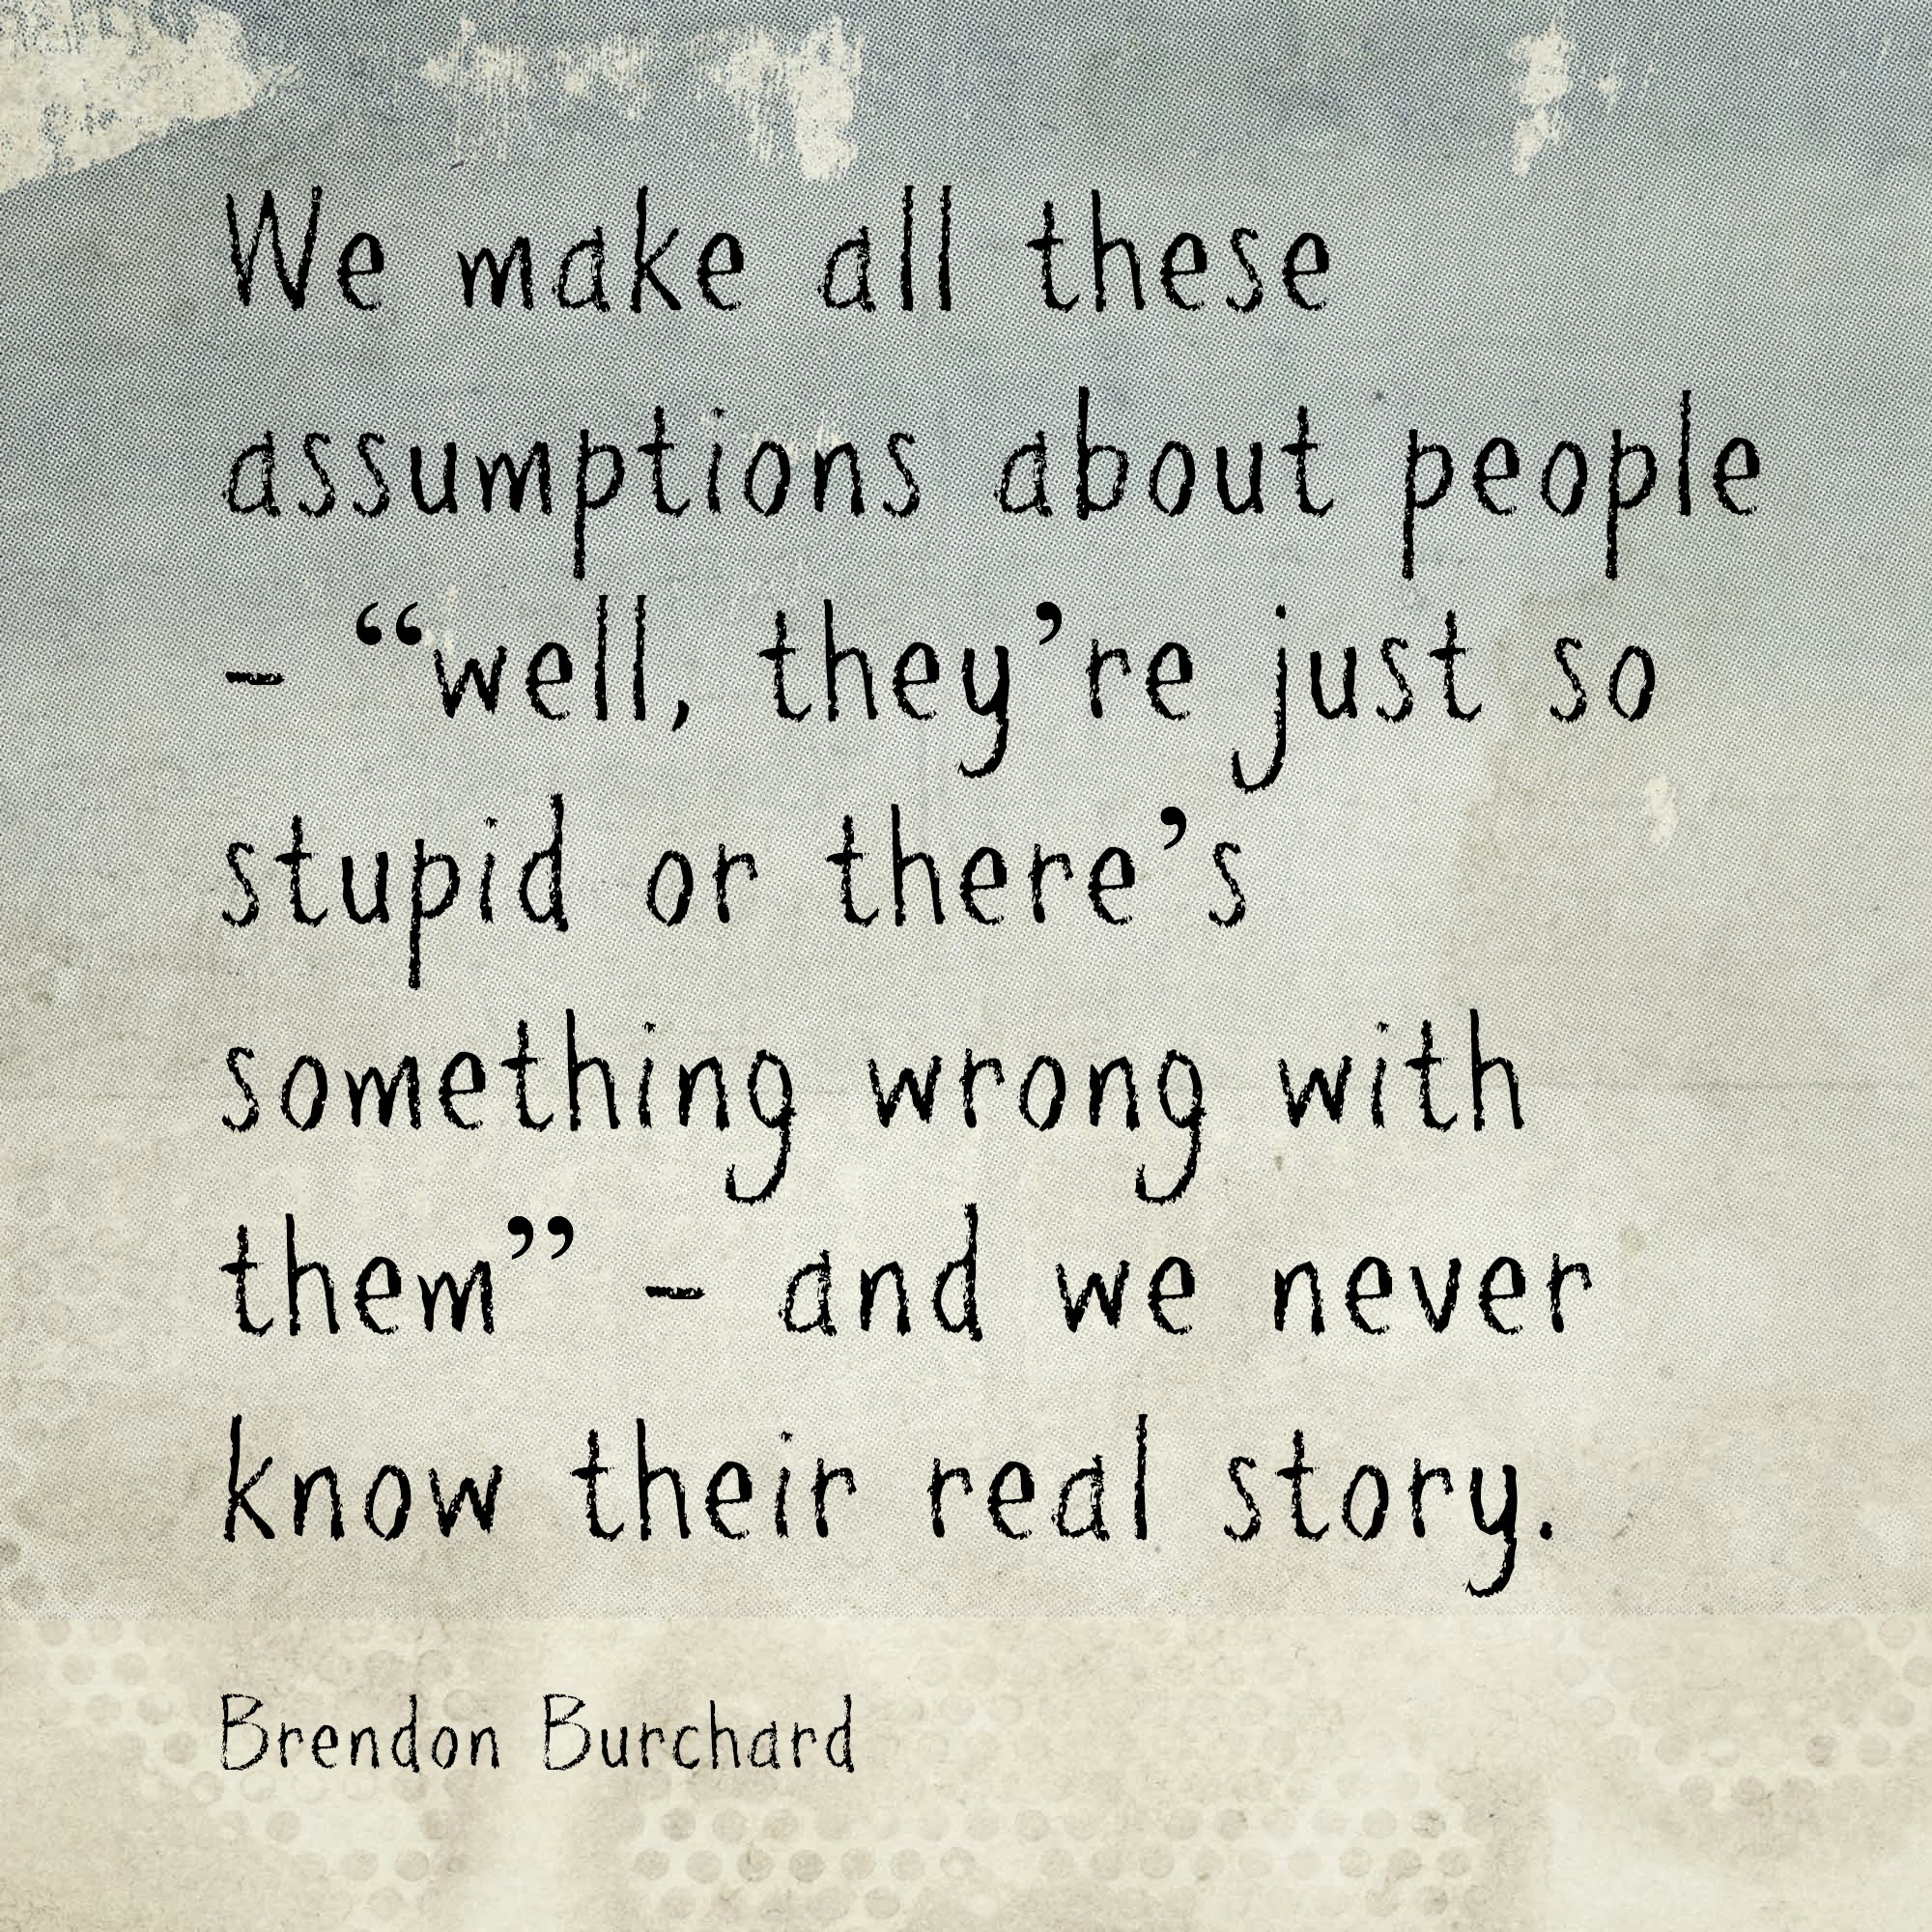 Frustrating People, Making Assumptions, Brendon Burchard, Personal Development, Growth, Motivation Manifesto